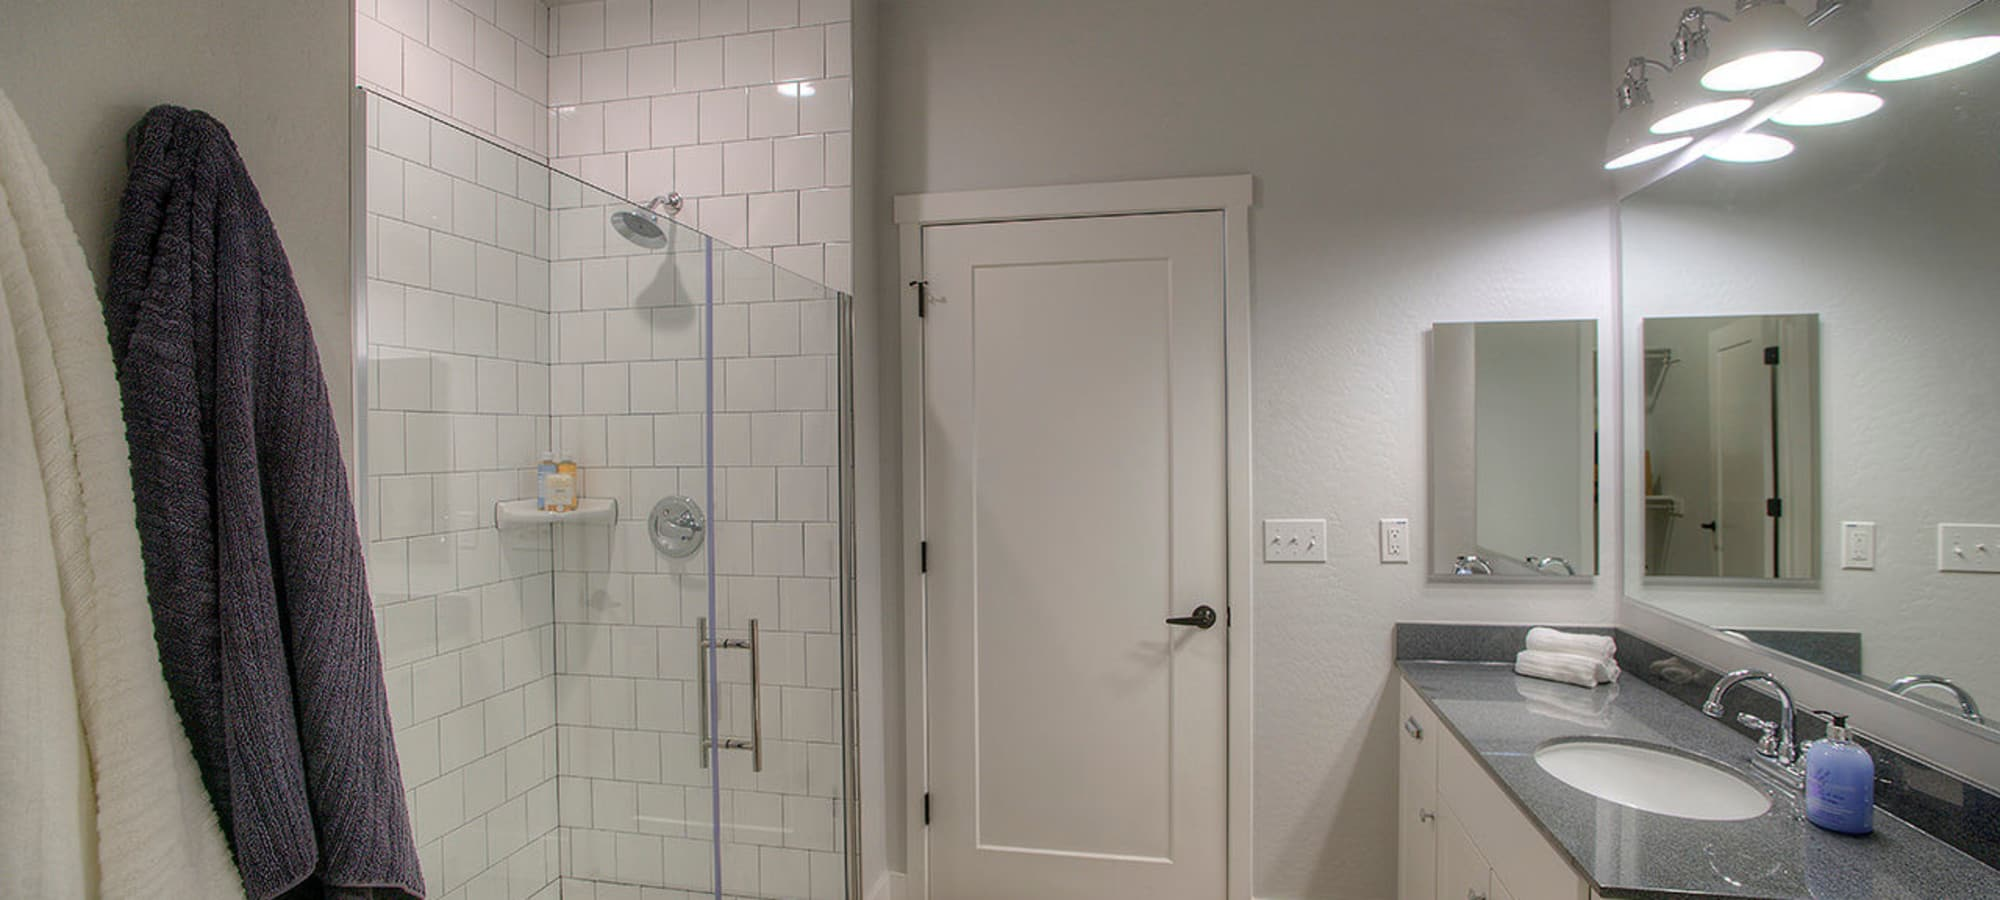 Large bathroom with tiled shower and granite countertop in model home at District Lofts in Gilbert, Arizona